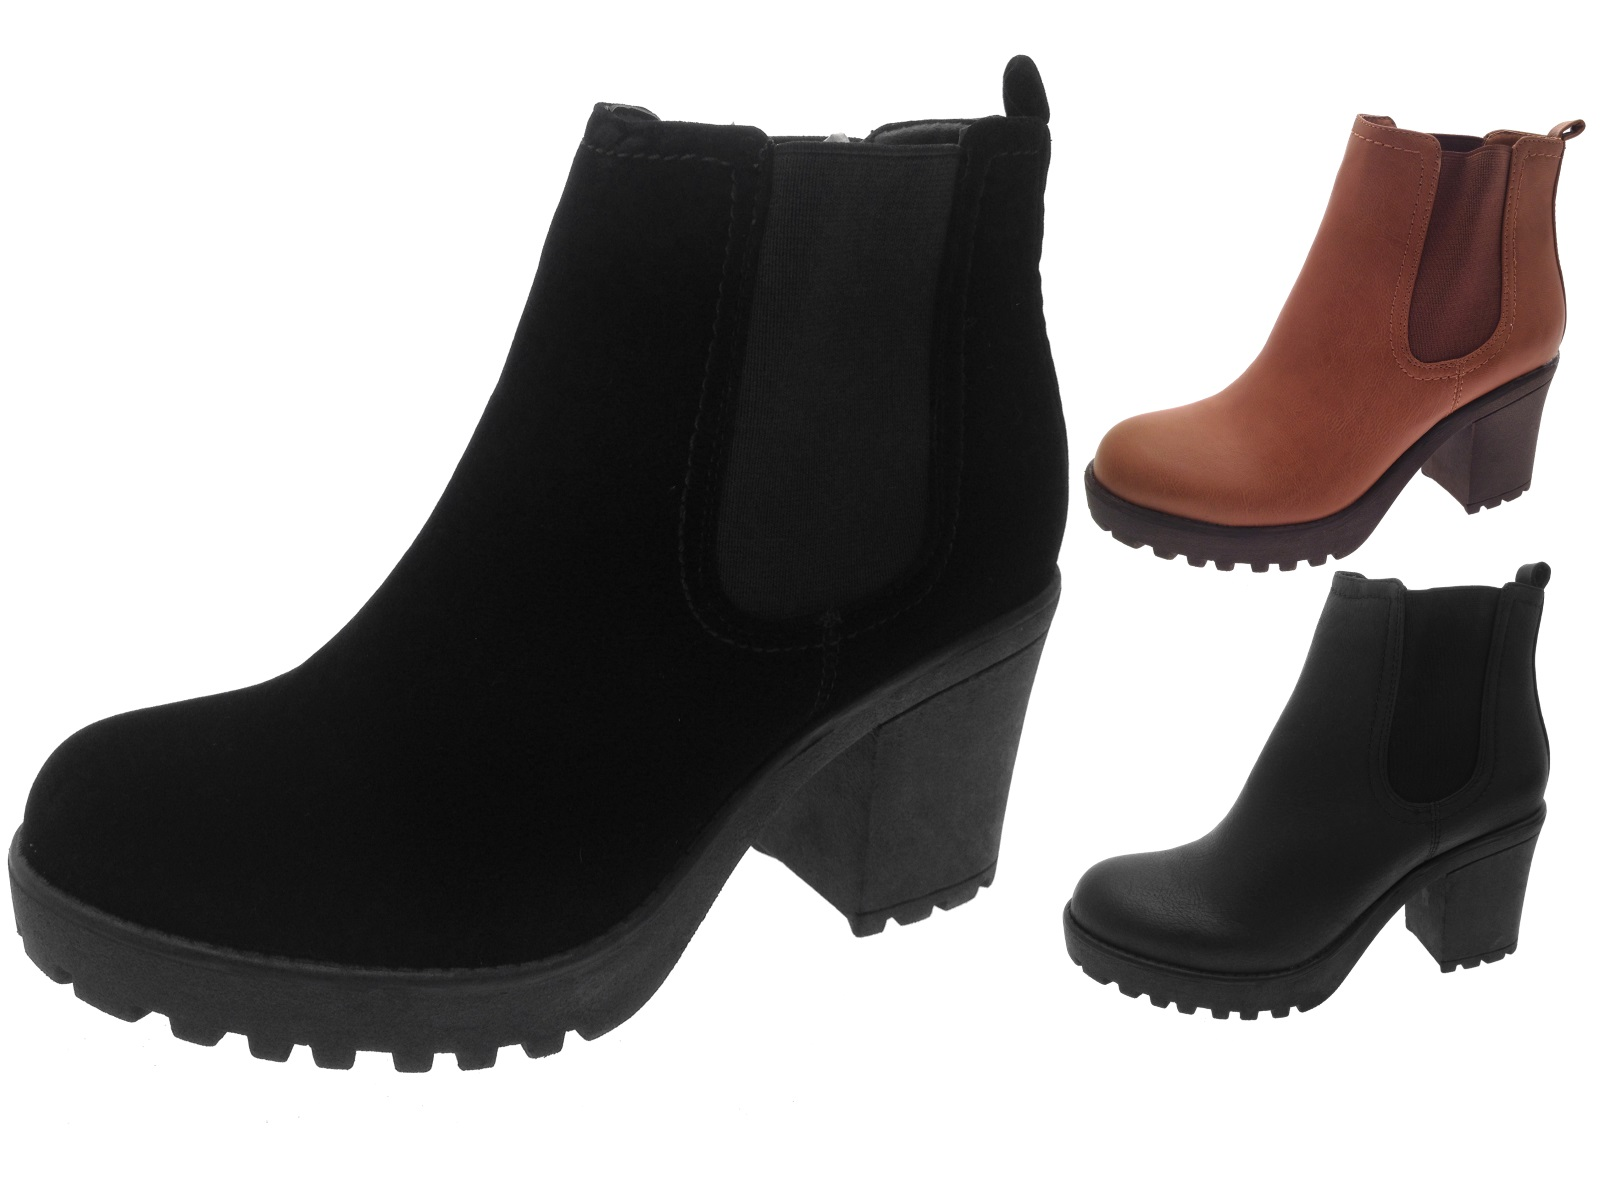 Find Chelsea boots, Mid heel from the Womens department at Debenhams. Shop a wide range of Boots products and more at our online shop today.